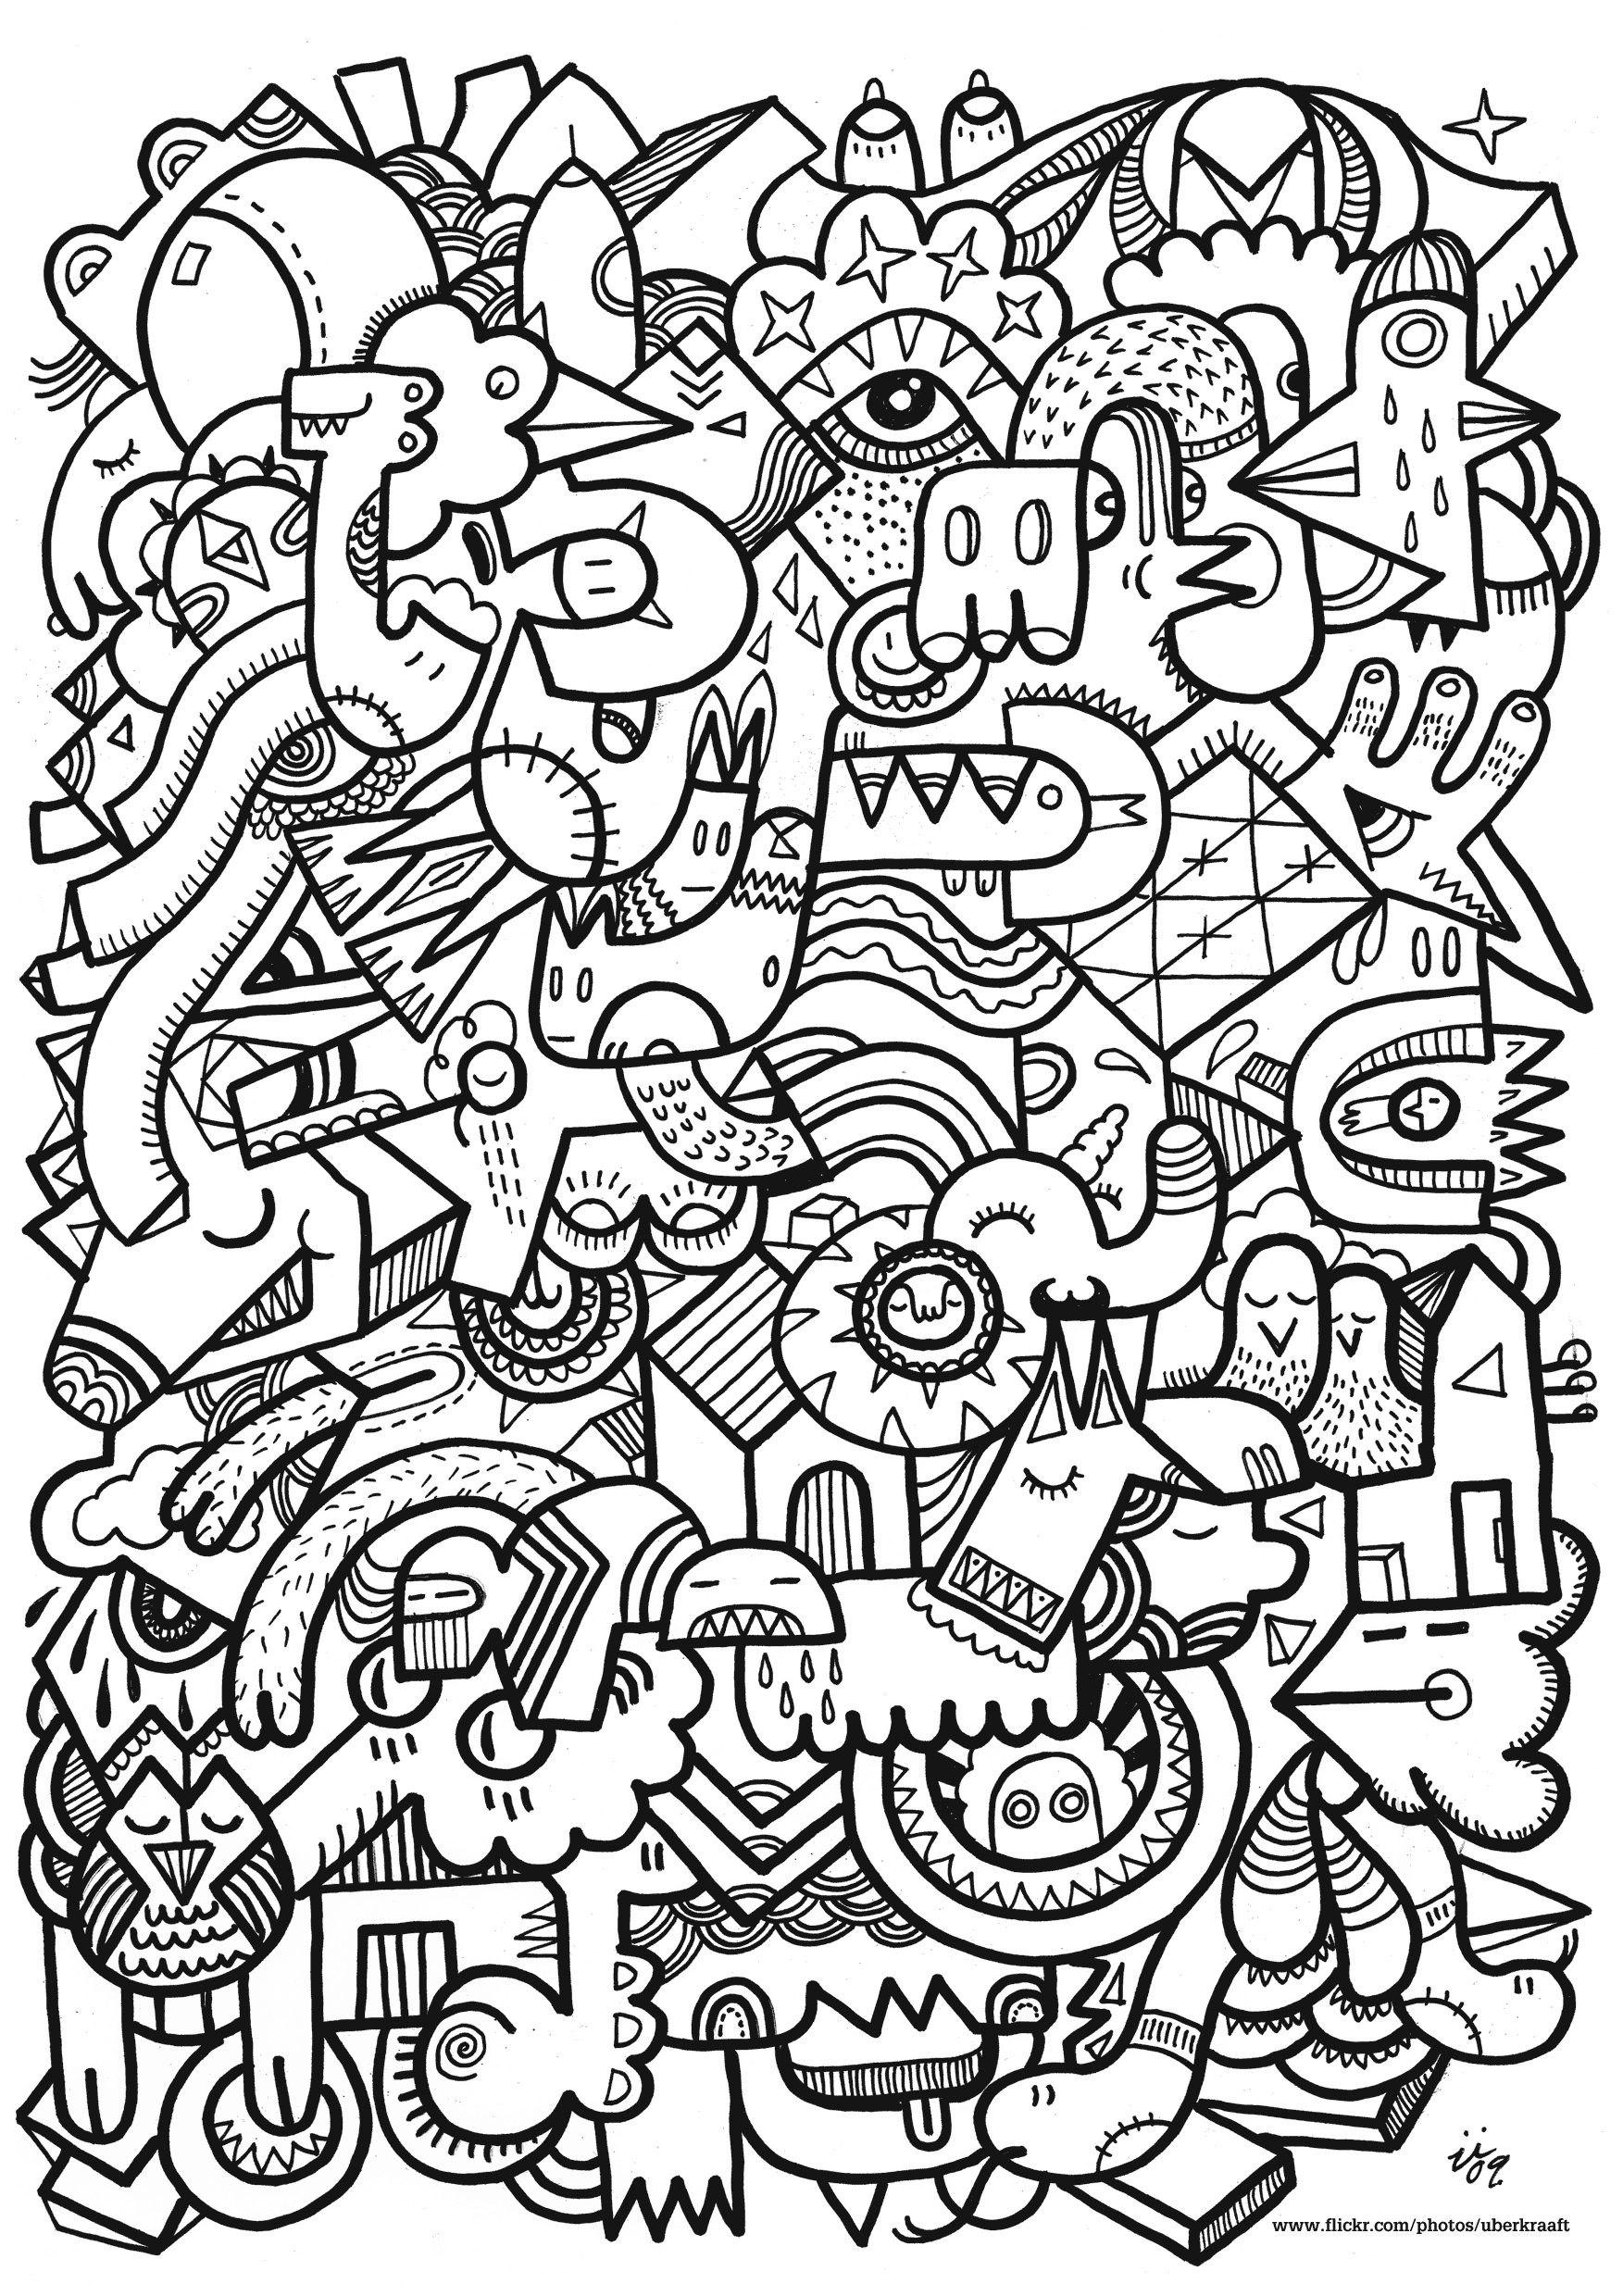 Abstract Design Coloring Pages Patterns Difficult Colouring Pages Printable Of Snowflake Coloring Pages for Adults Coloring Pages Inspiring Printable